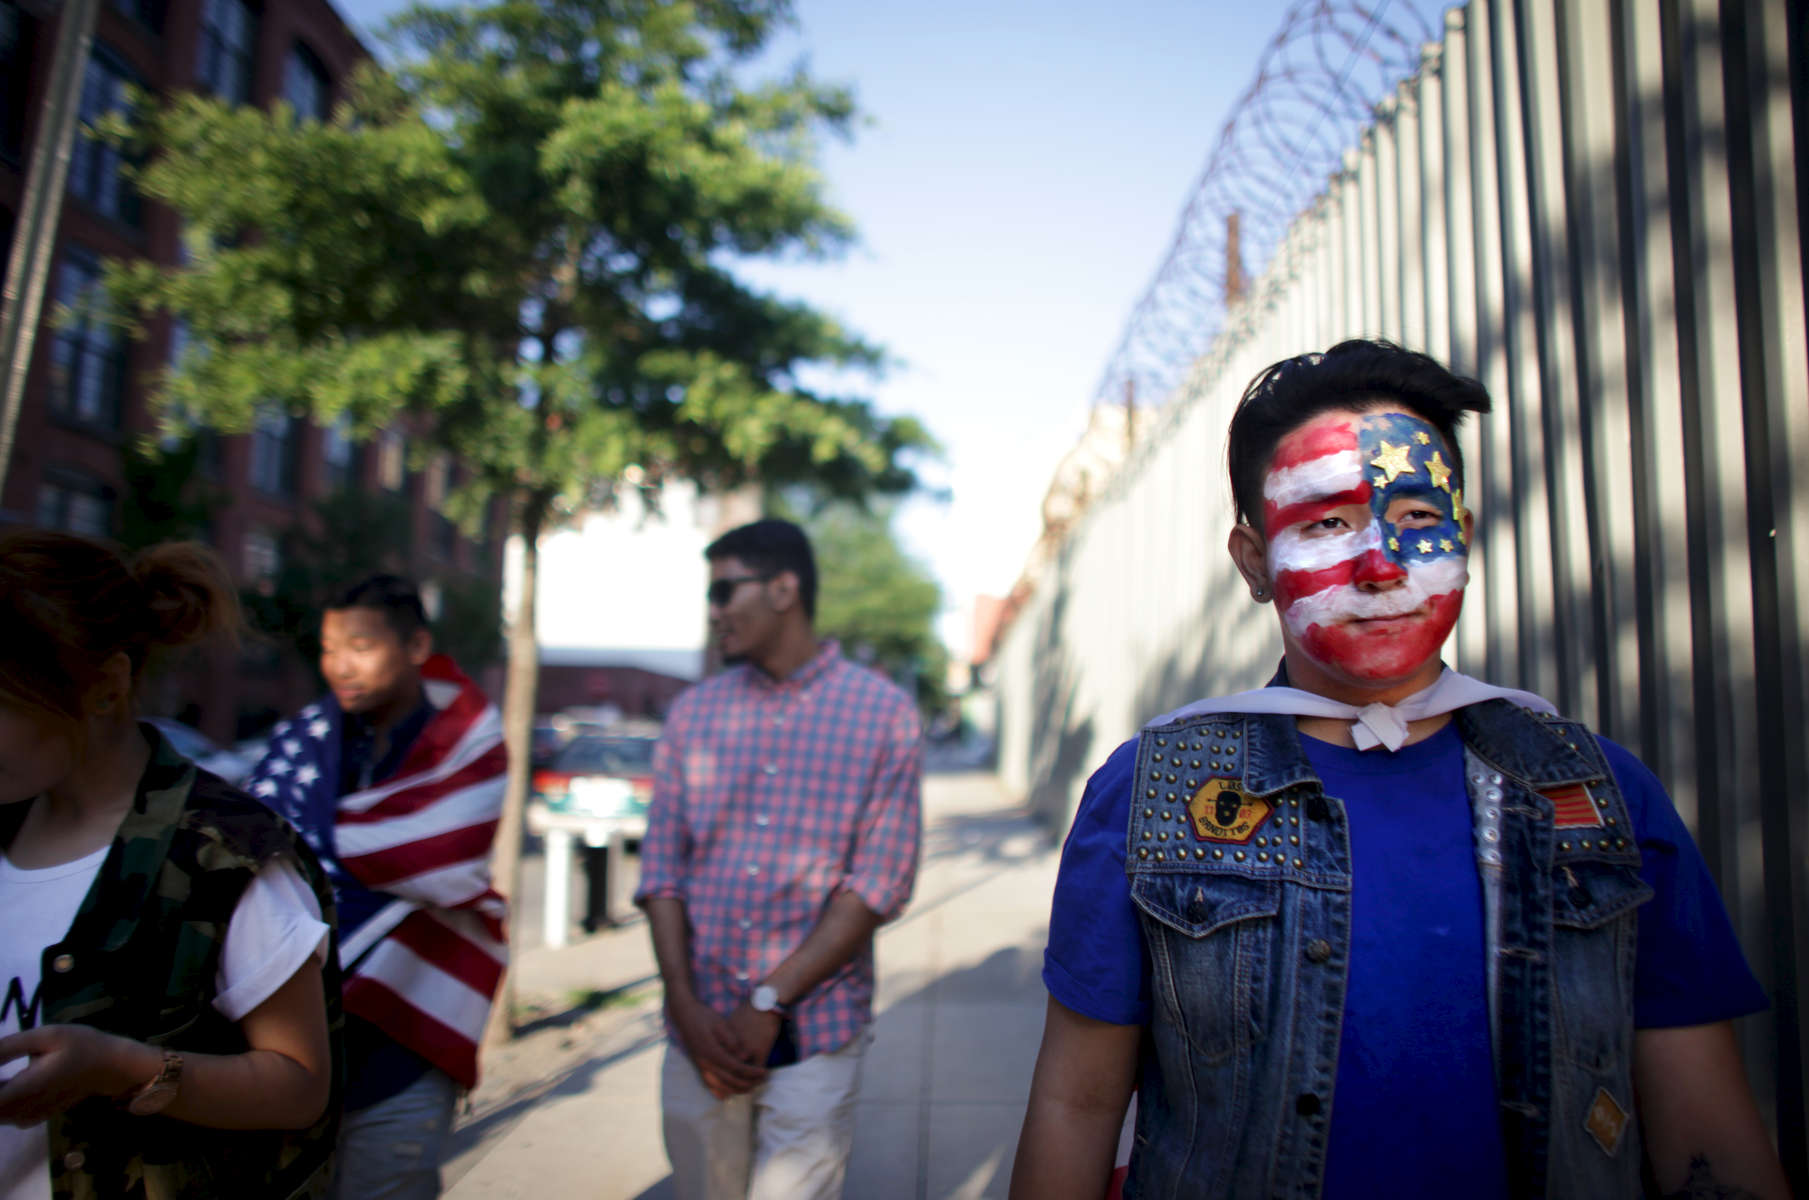 (L-R) Tenzin Dolkar, Tenzin Norsang, Hussein Khalique, and Tenzin Norgay walk around DUMBO during halftime of a screening of the US-Portugal World Cup game under the Manhattan Bridge archway in Brooklyn on June 22, 2014. The game ended 2-2 in overtime. (For The New York Times)